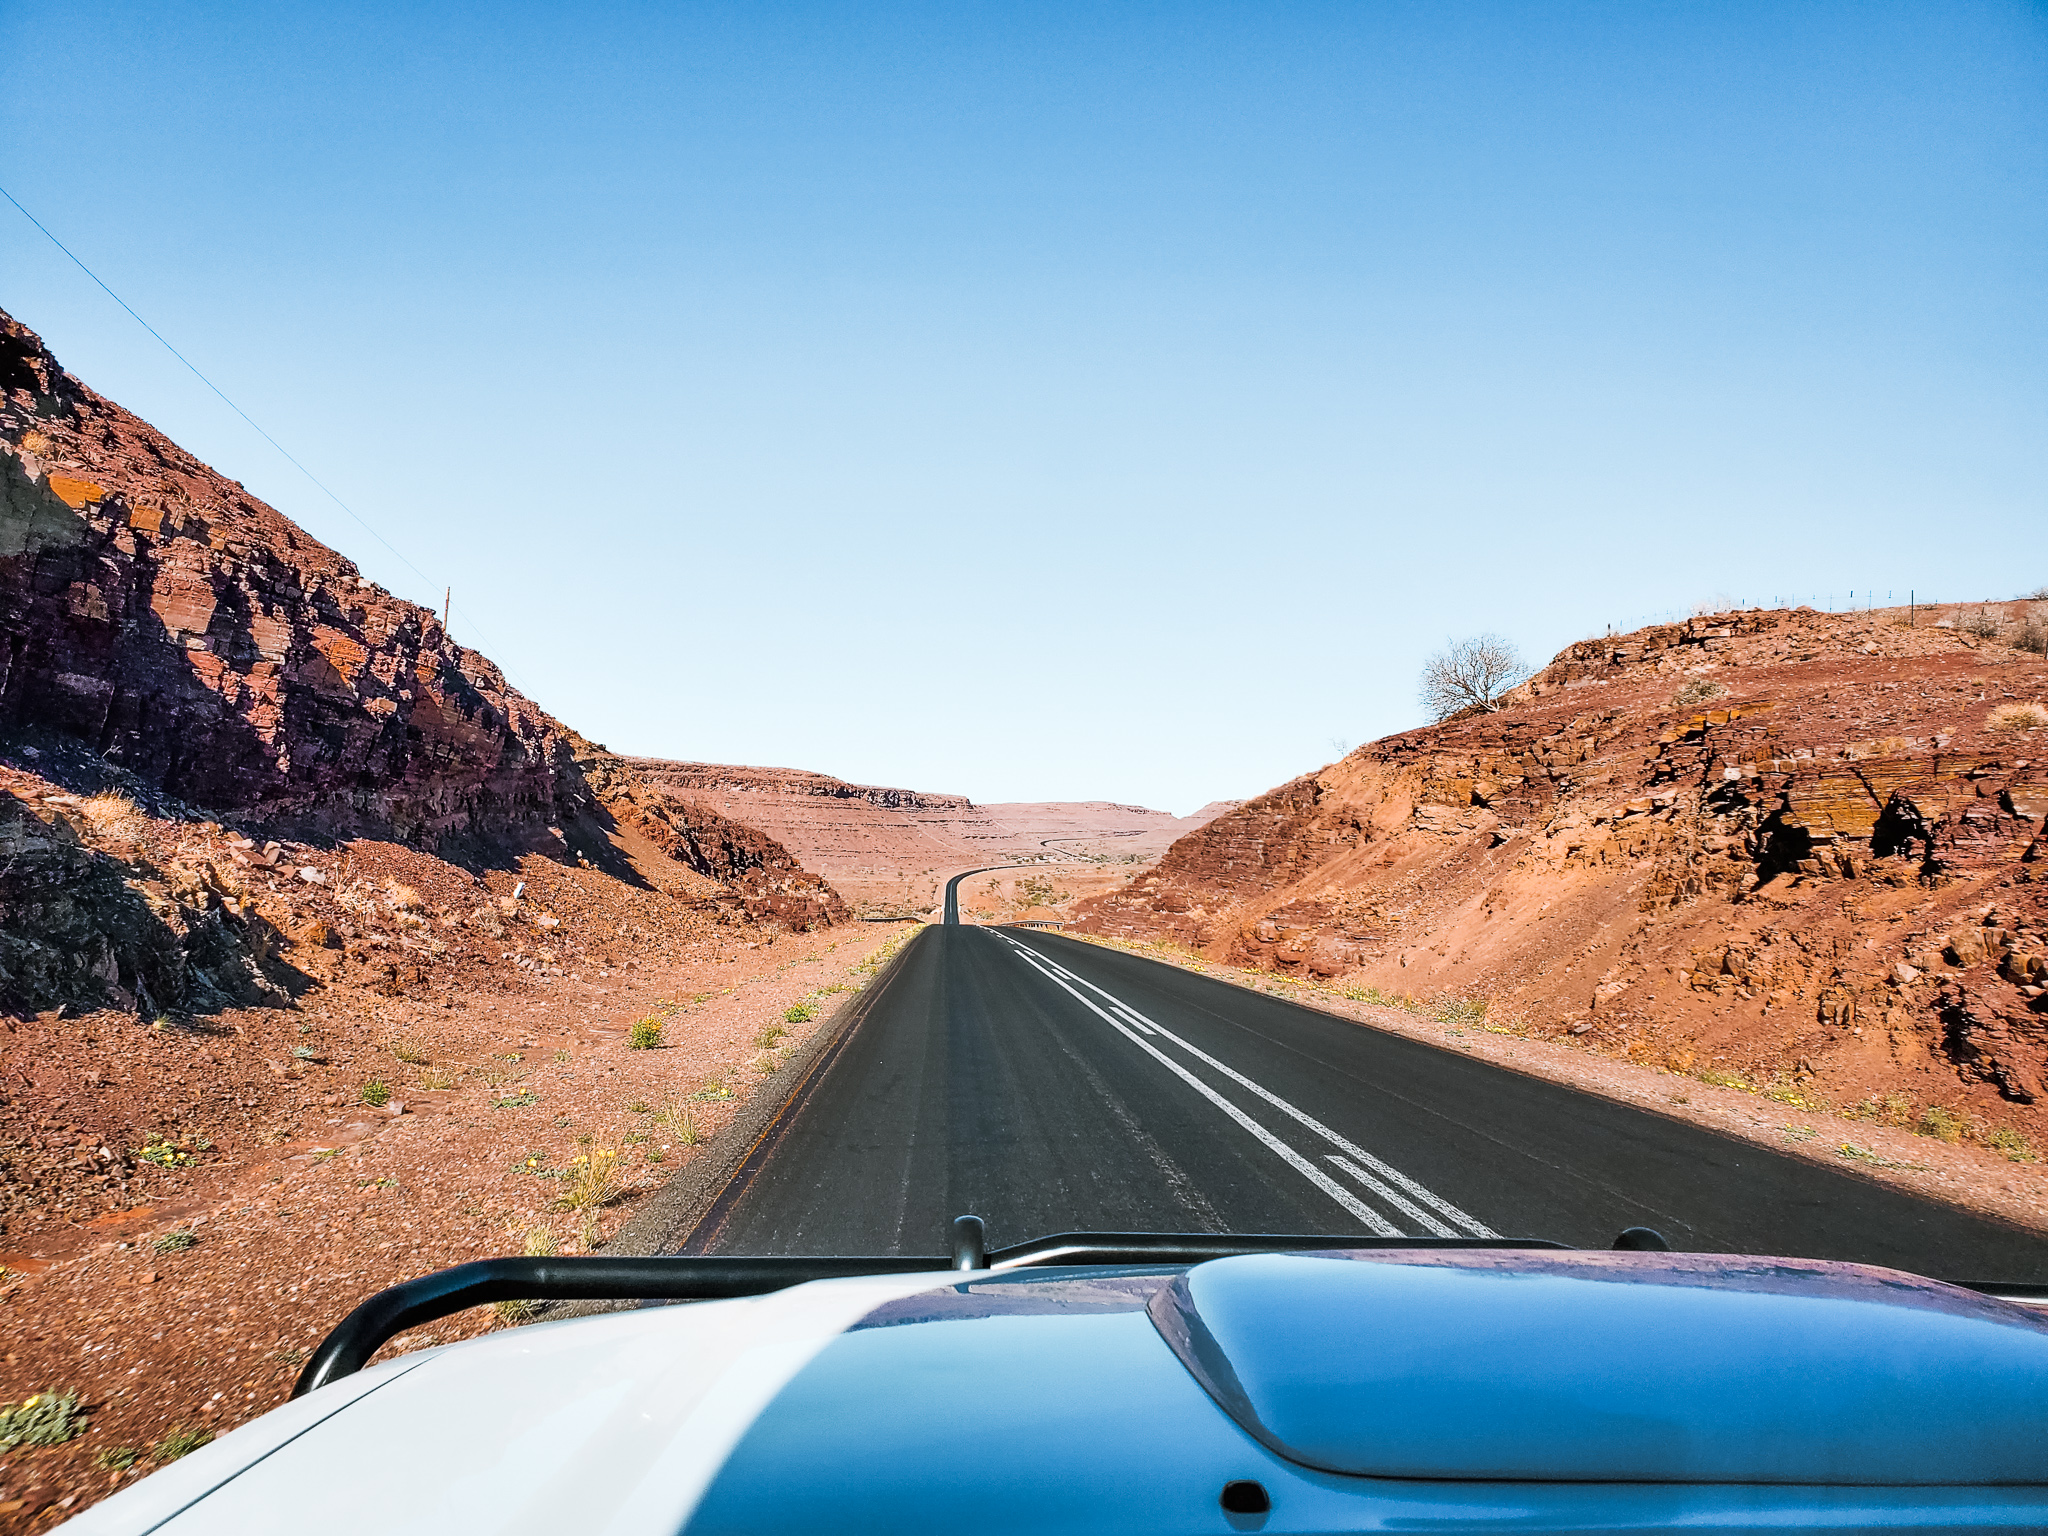 Namibia photos to inspire you to go on a road trip